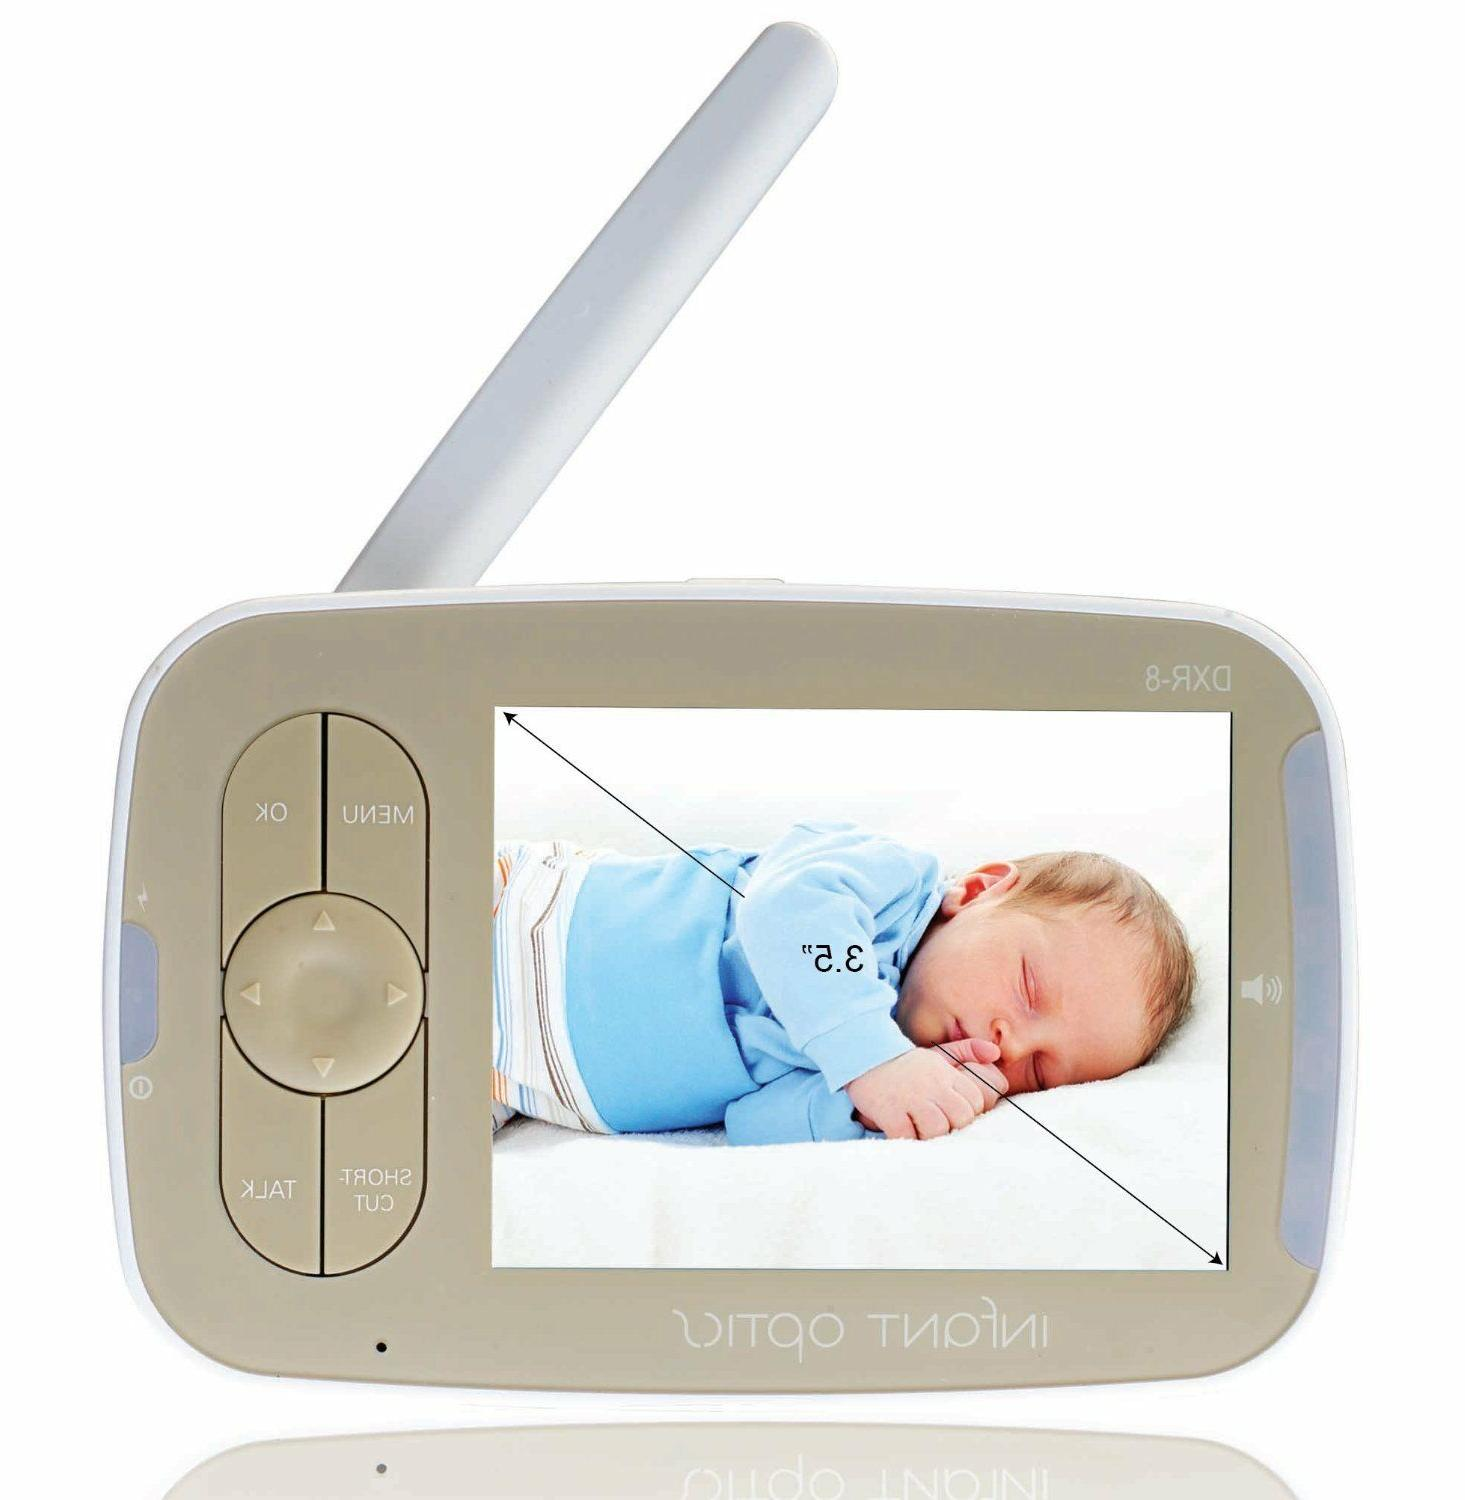 Interchangeable Optical Lens NO TAX!!! Infant Optics DXR-8 Video Baby Monitor